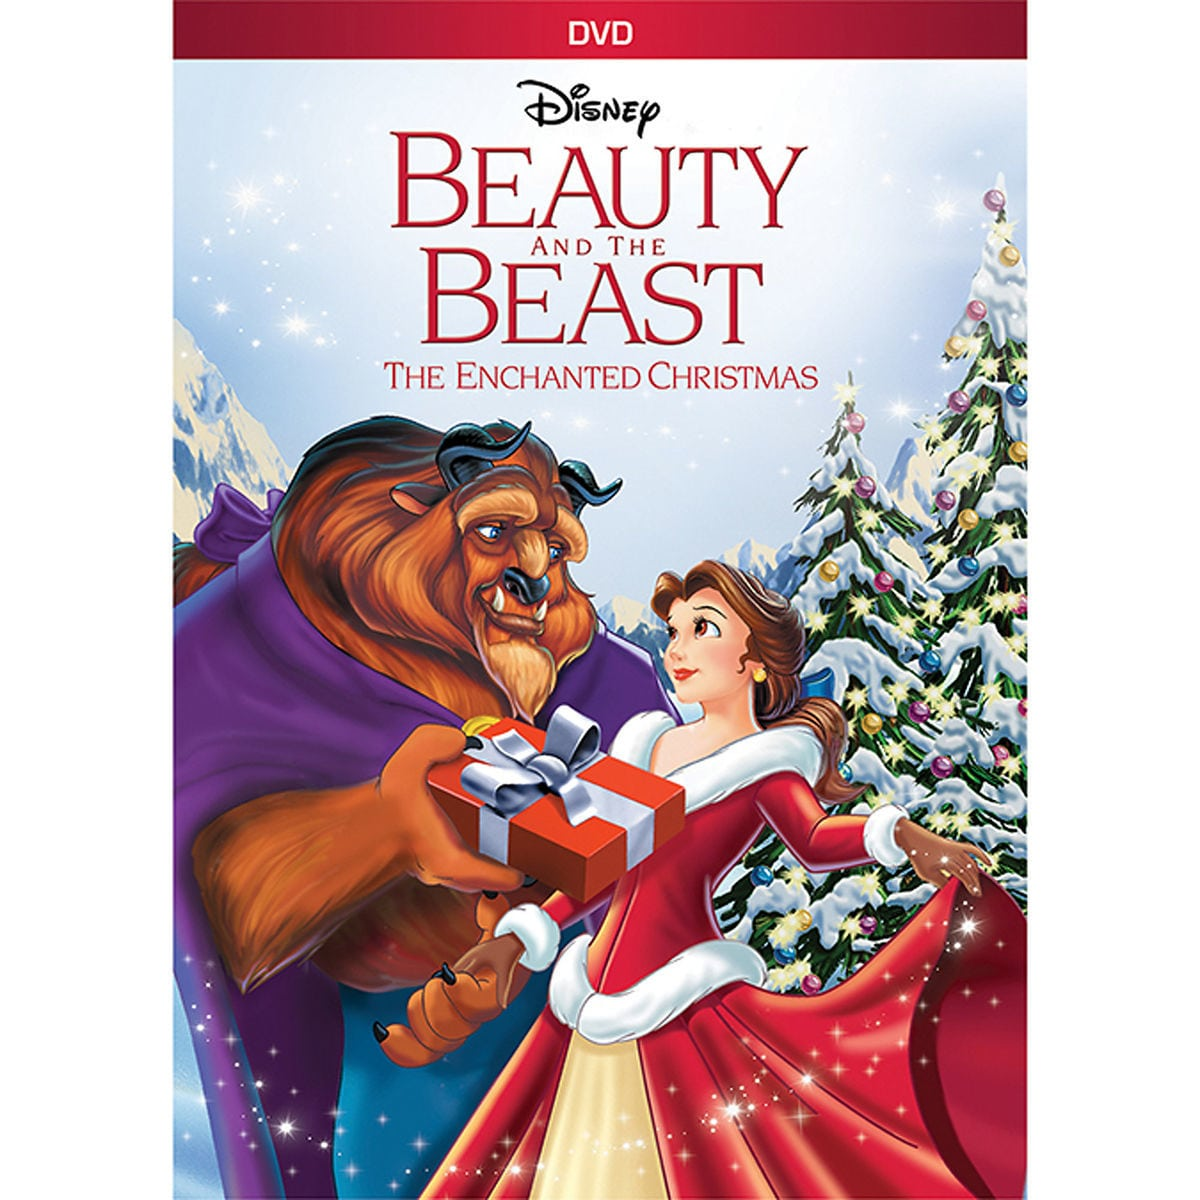 Beauty and the Beast: The Enchanted Christmas DVD   shopDisney